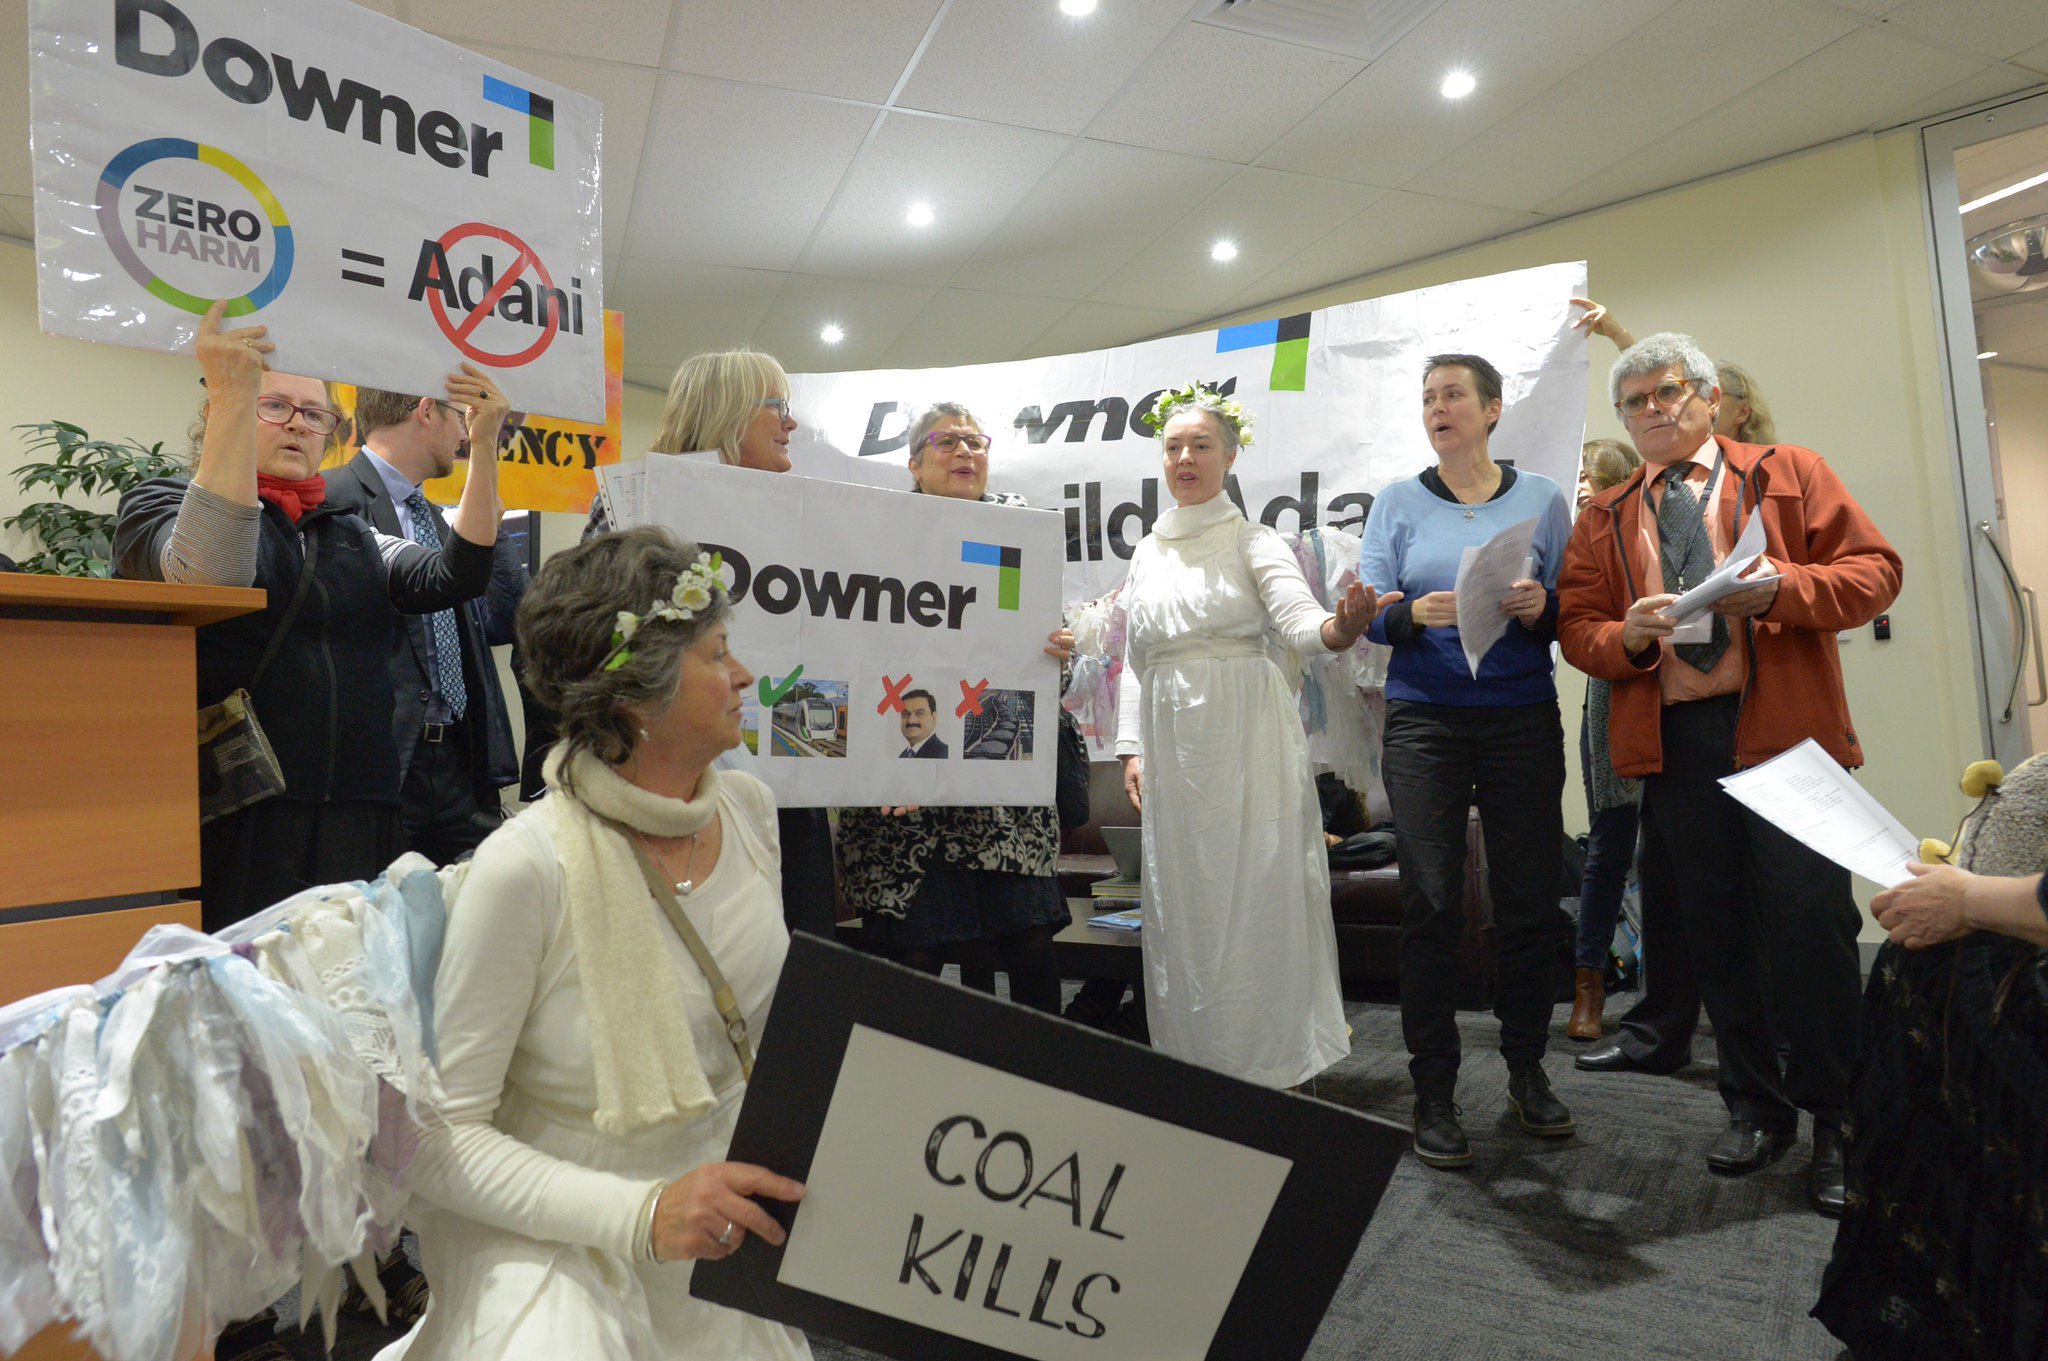 BREAKING Concerned citizens blockading Downer Larimer St, asking that @downergroup withdraw from #Adani mega mine Do No Harm #StopAdani https://t.co/KCub7PeXyI